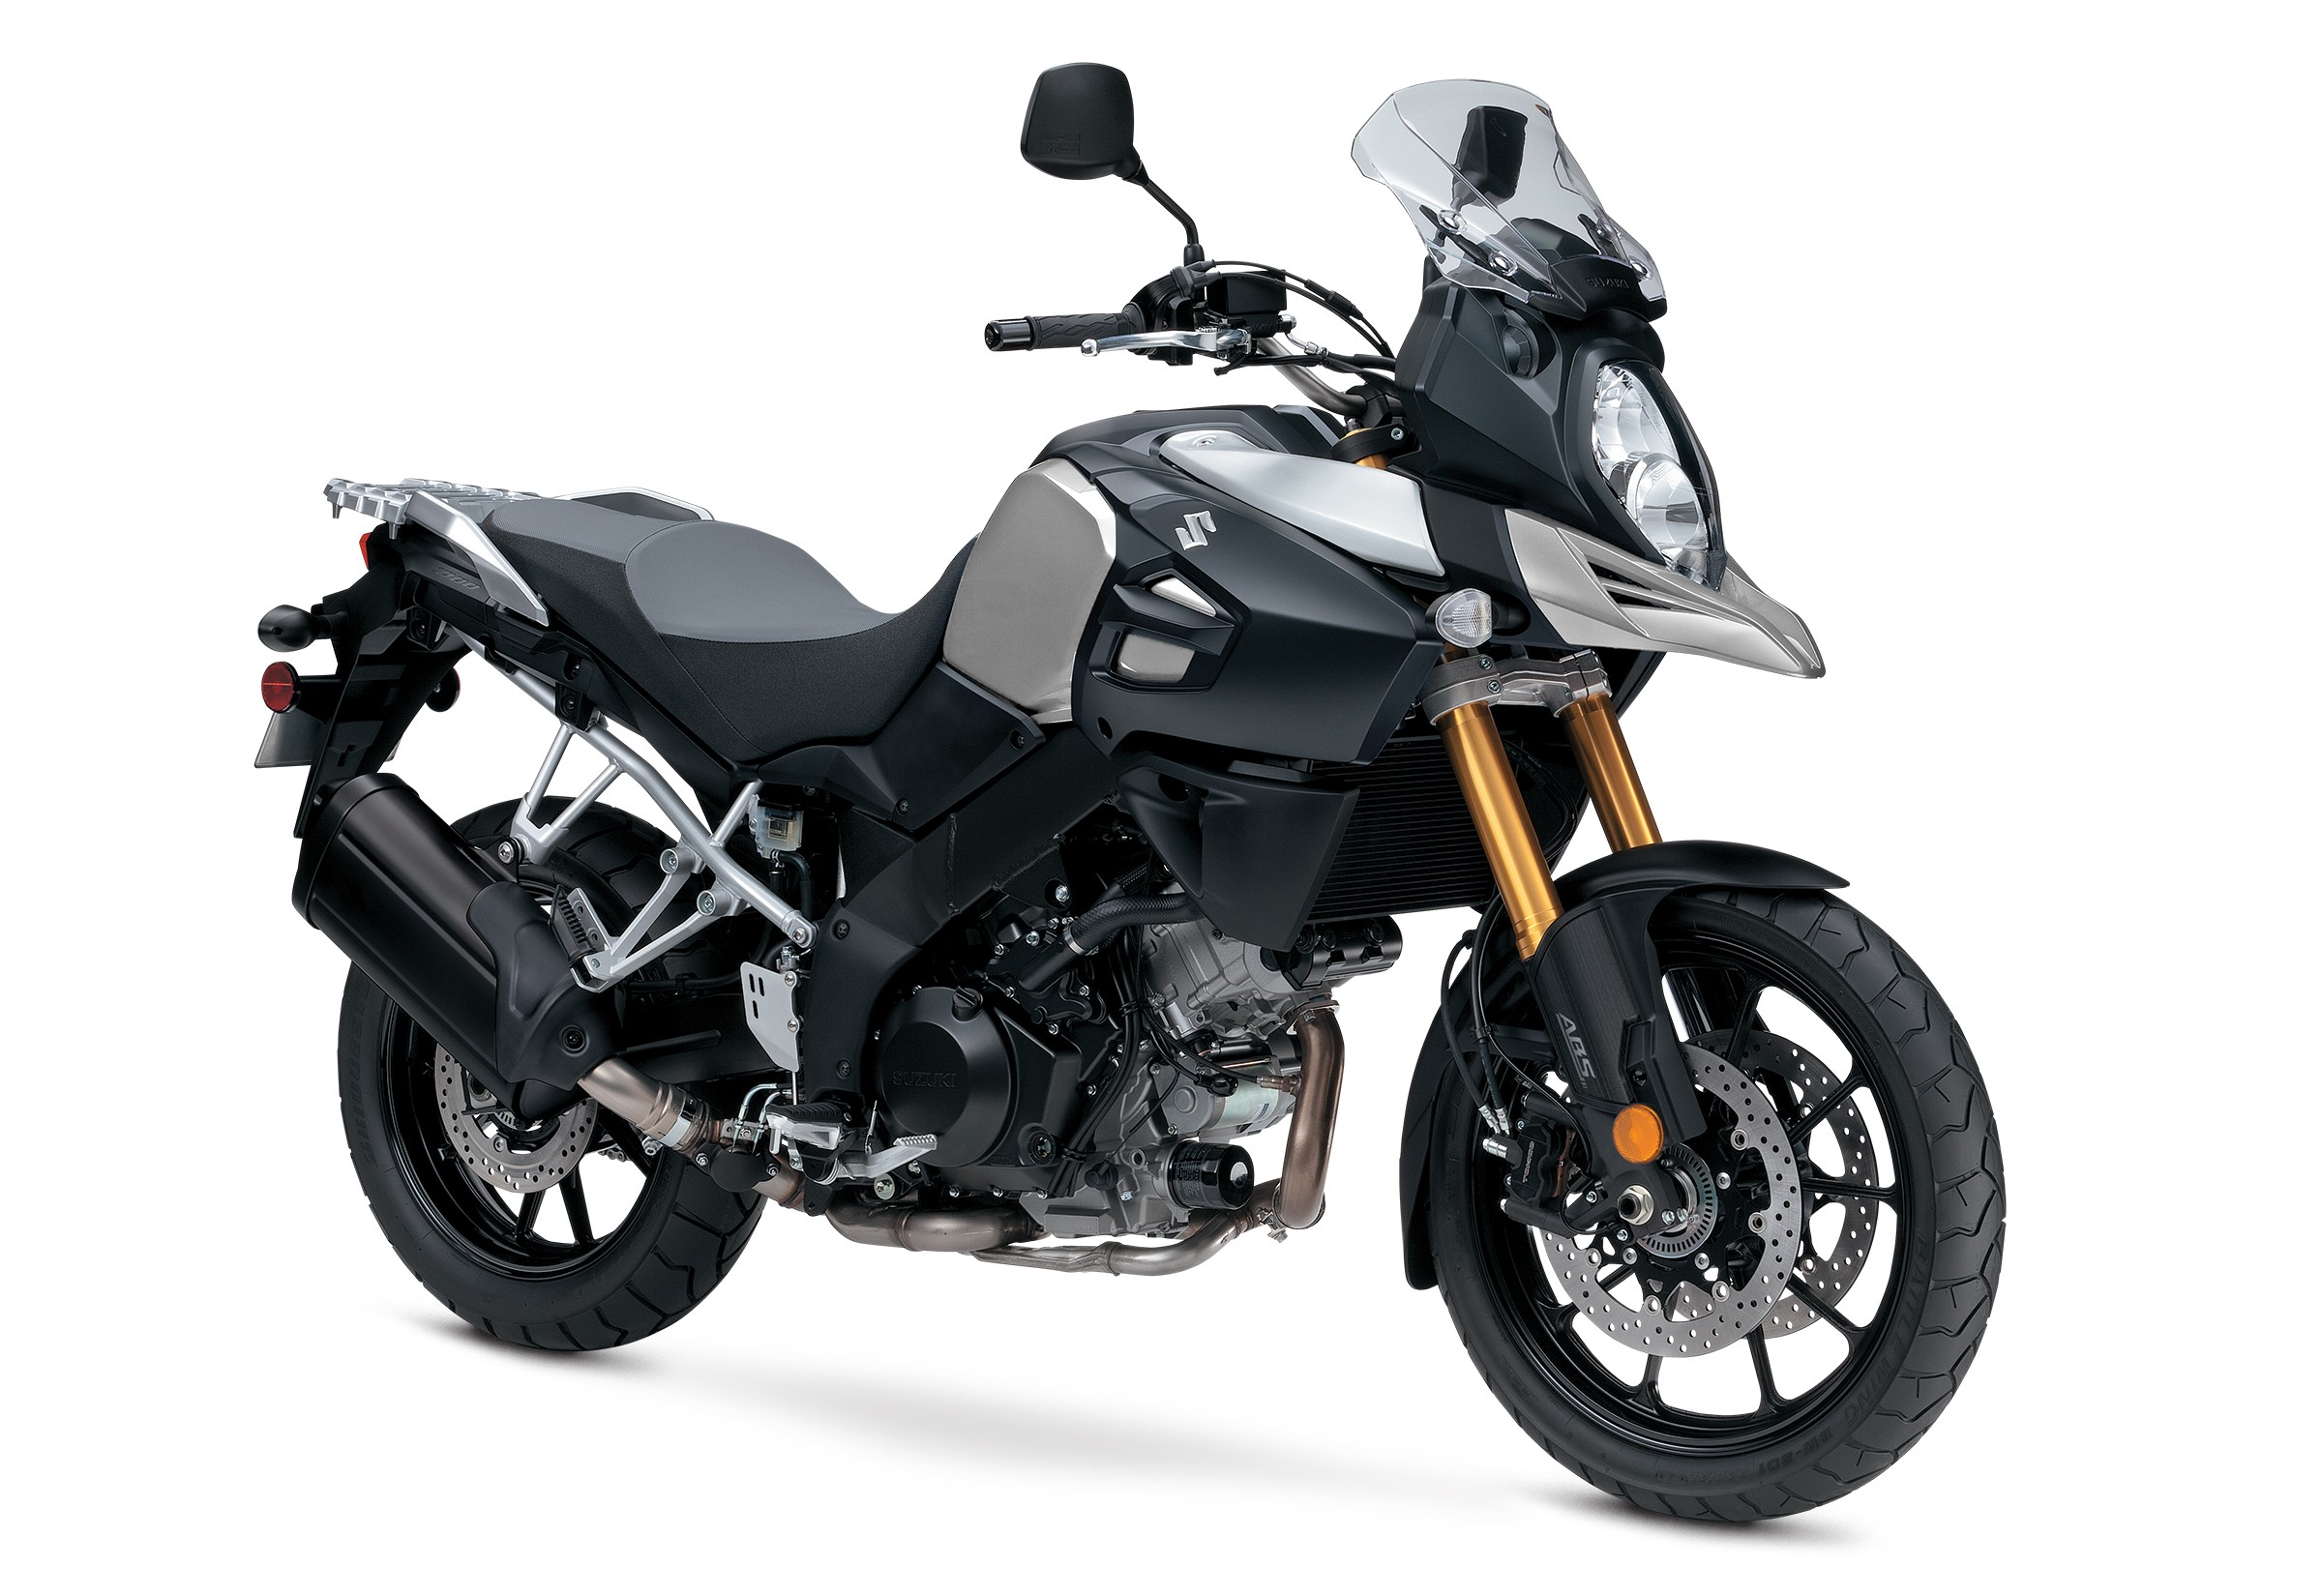 suzuki v strom 1000 abs specs 2016 2017 2018 2019. Black Bedroom Furniture Sets. Home Design Ideas